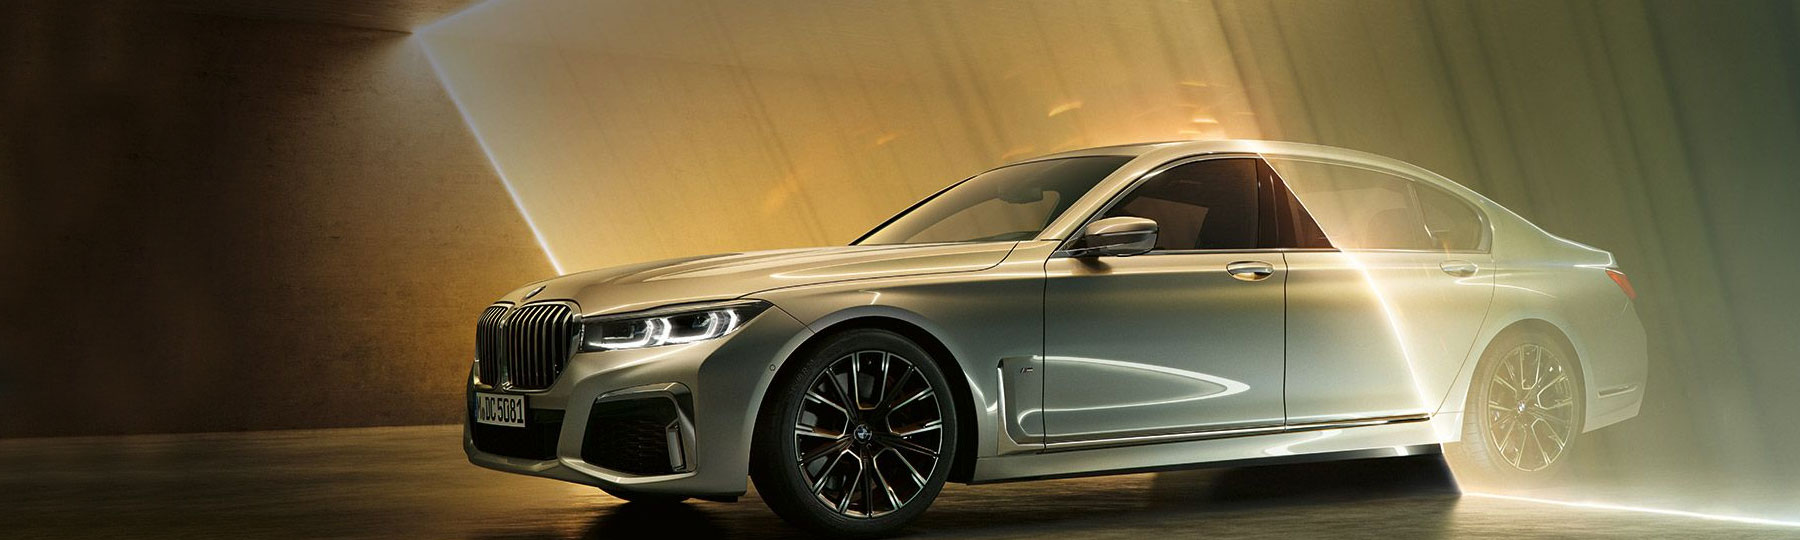 BMW 7 Series Saloon Business Offer